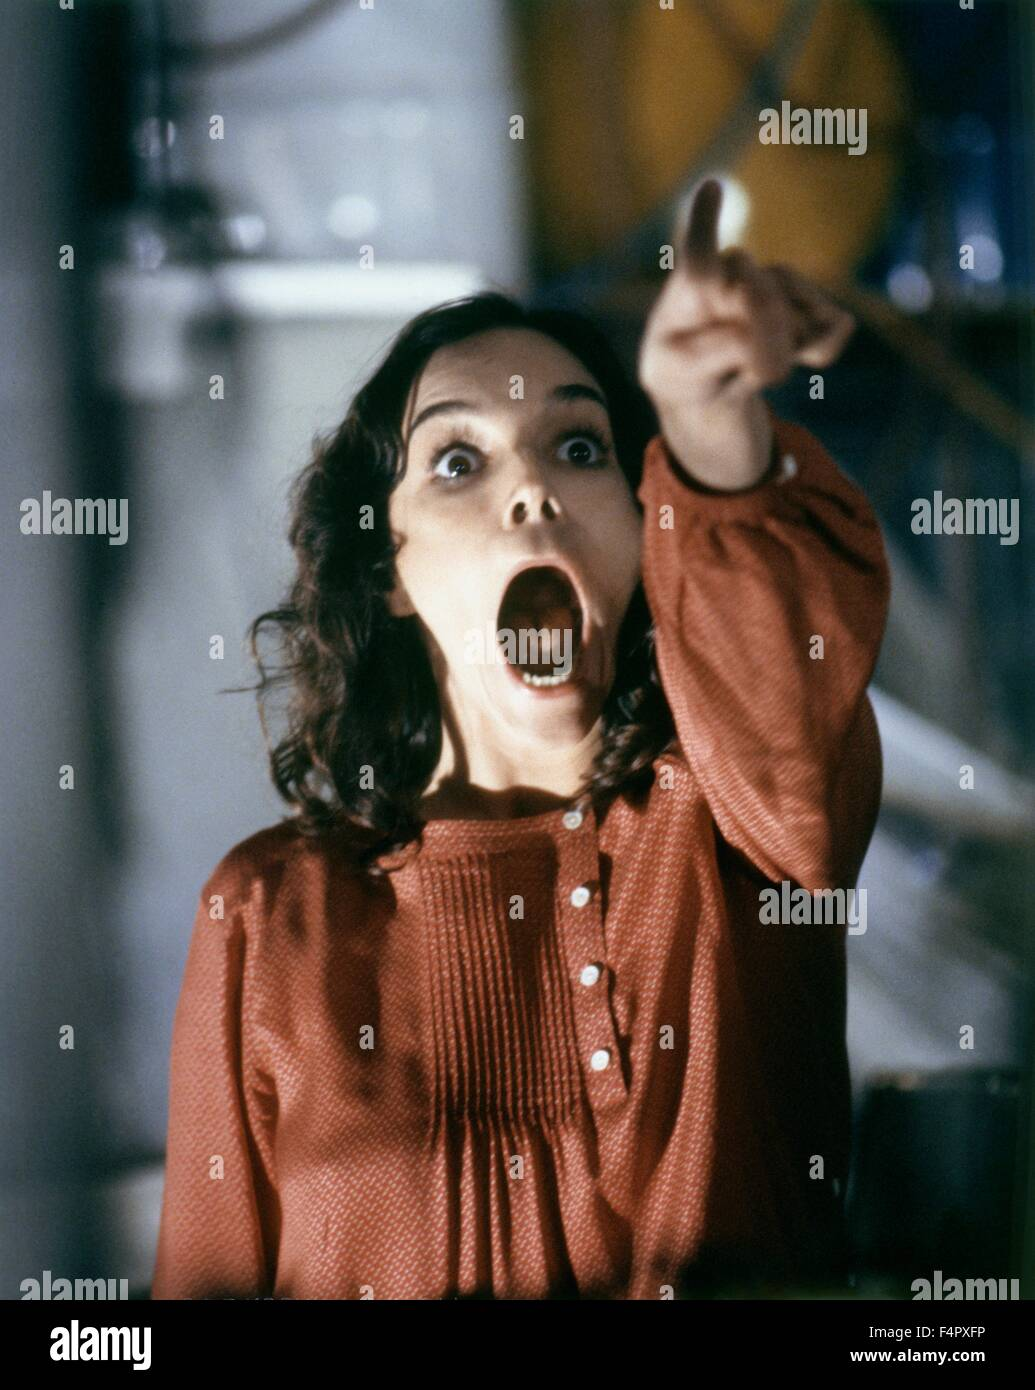 Brooke Adams / Invasion Of The Body Snatchers / 1978 / Directed By Philip Kaufman /  [United Artists] - Stock Image